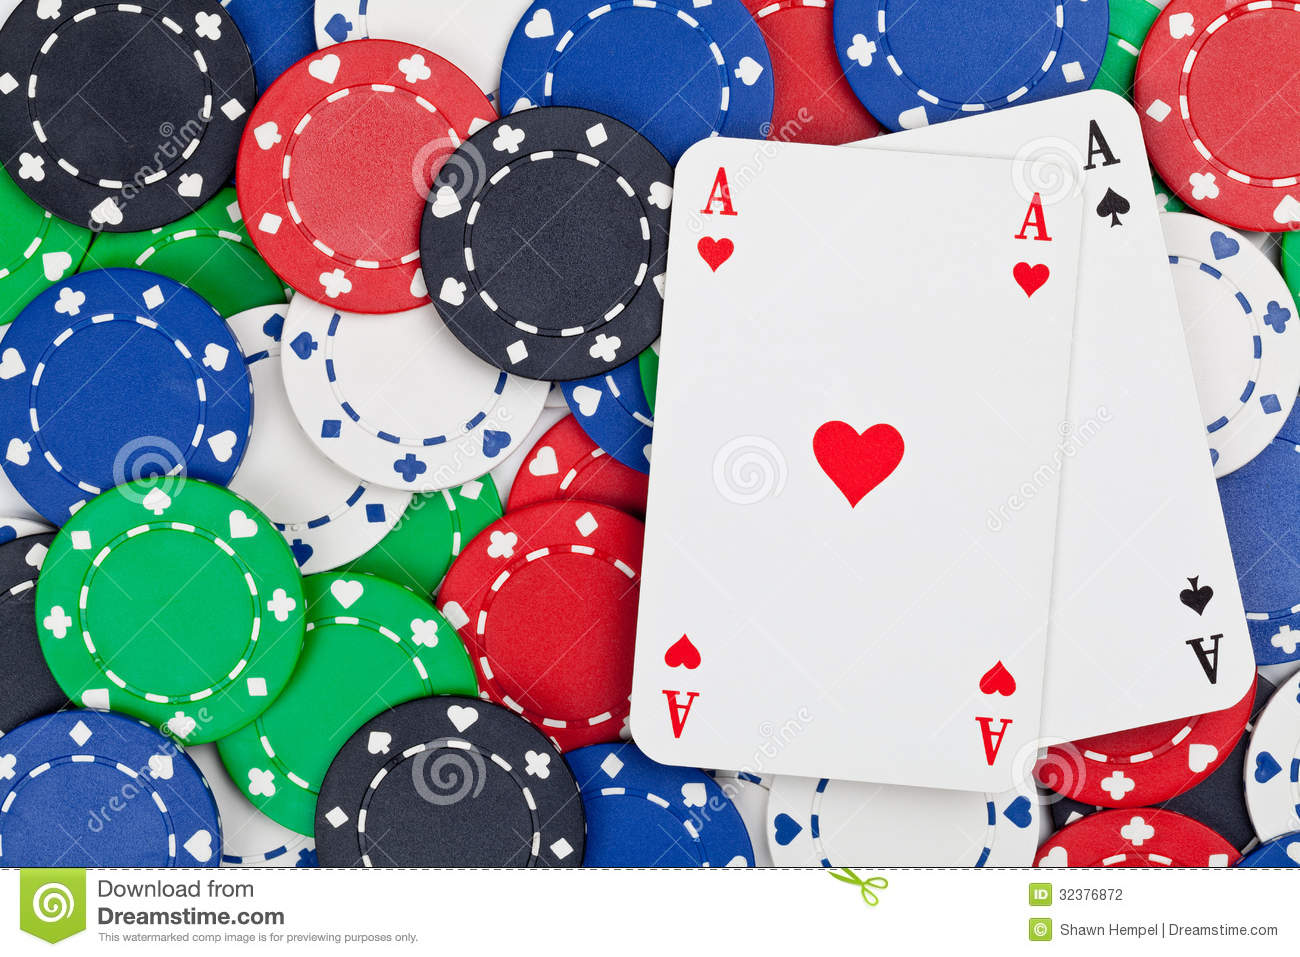 probability of a pair of aces in poker